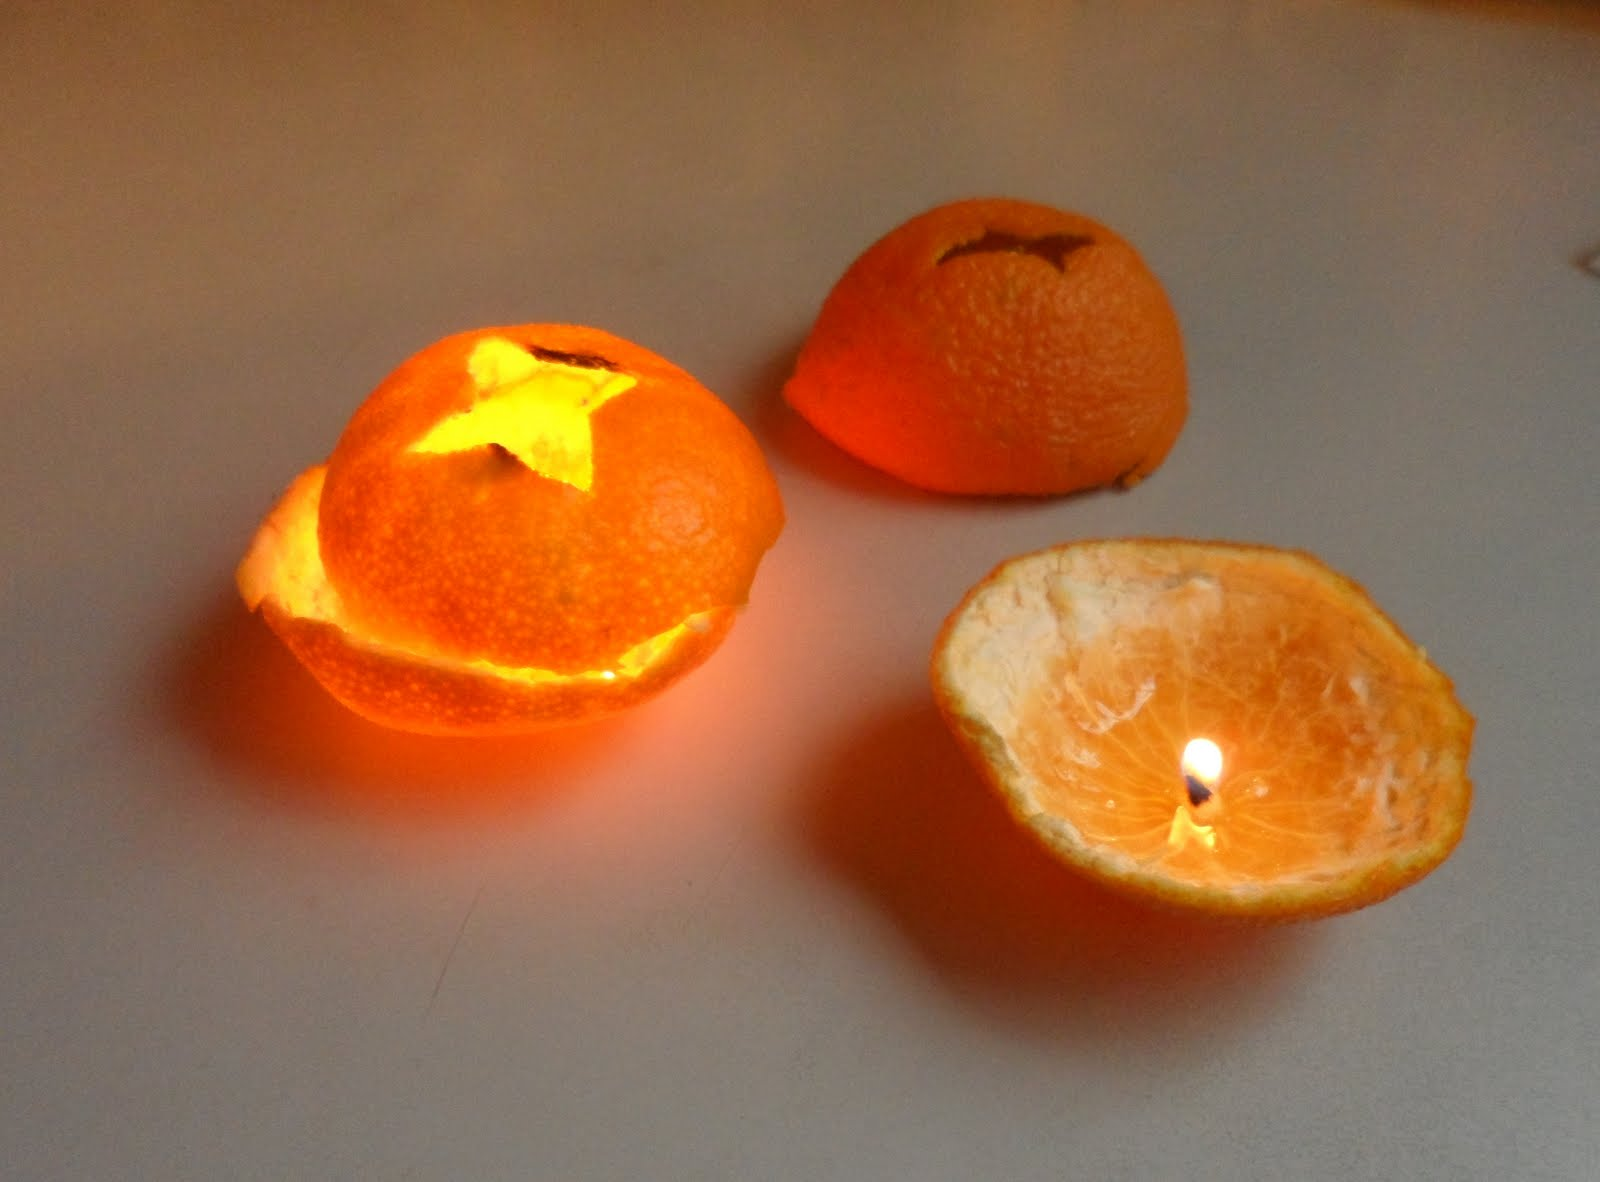 Dead easy diy clementine candles joyarna joyunas knitting blog clementine orange oil lamp candles mood lighting do it yourself craft solutioingenieria Choice Image